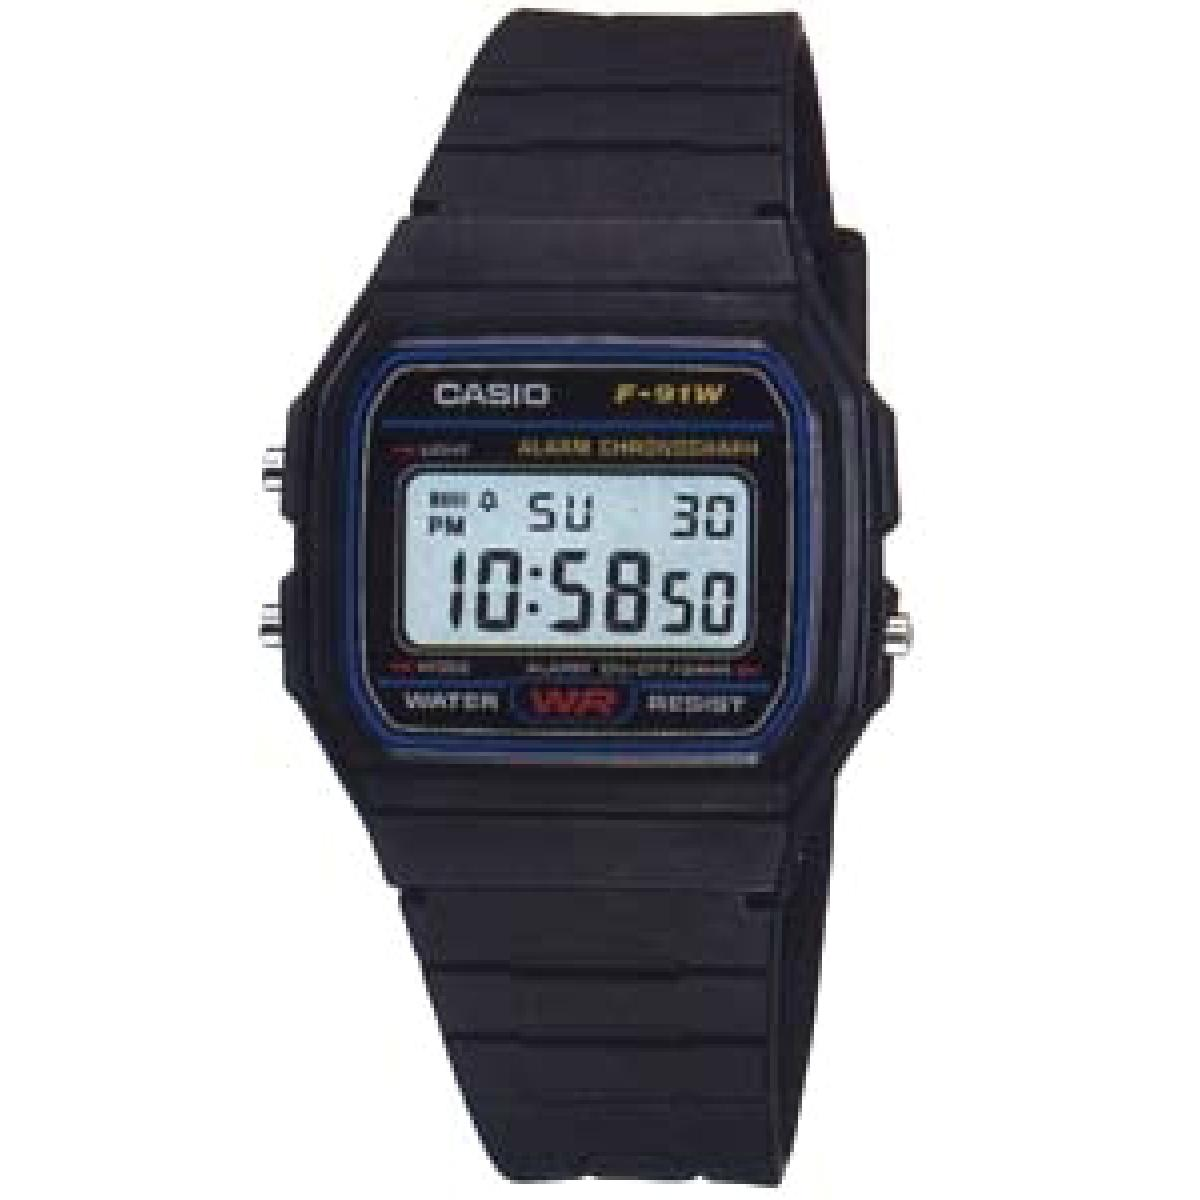 Montre Casio Résine Casio Collection F-91W-1YER - Homme